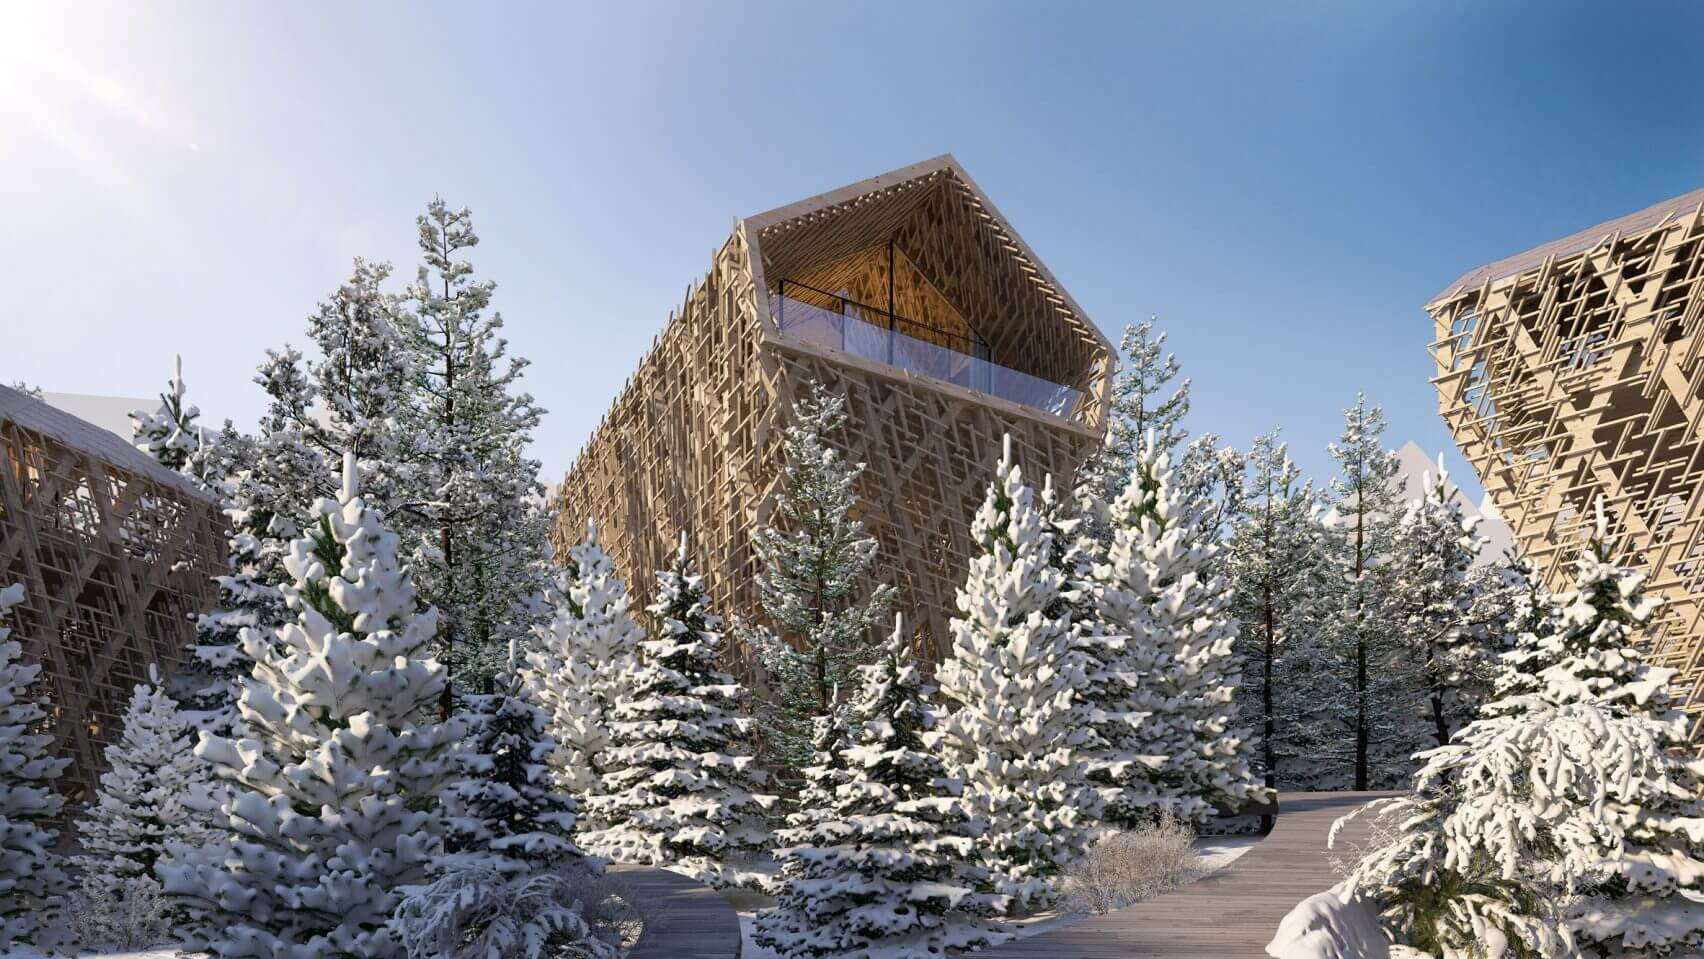 tree-suites-peter-pichler-architecture-residential-treehouses-wood-austria_dezeen_2364_col_3-1704x959